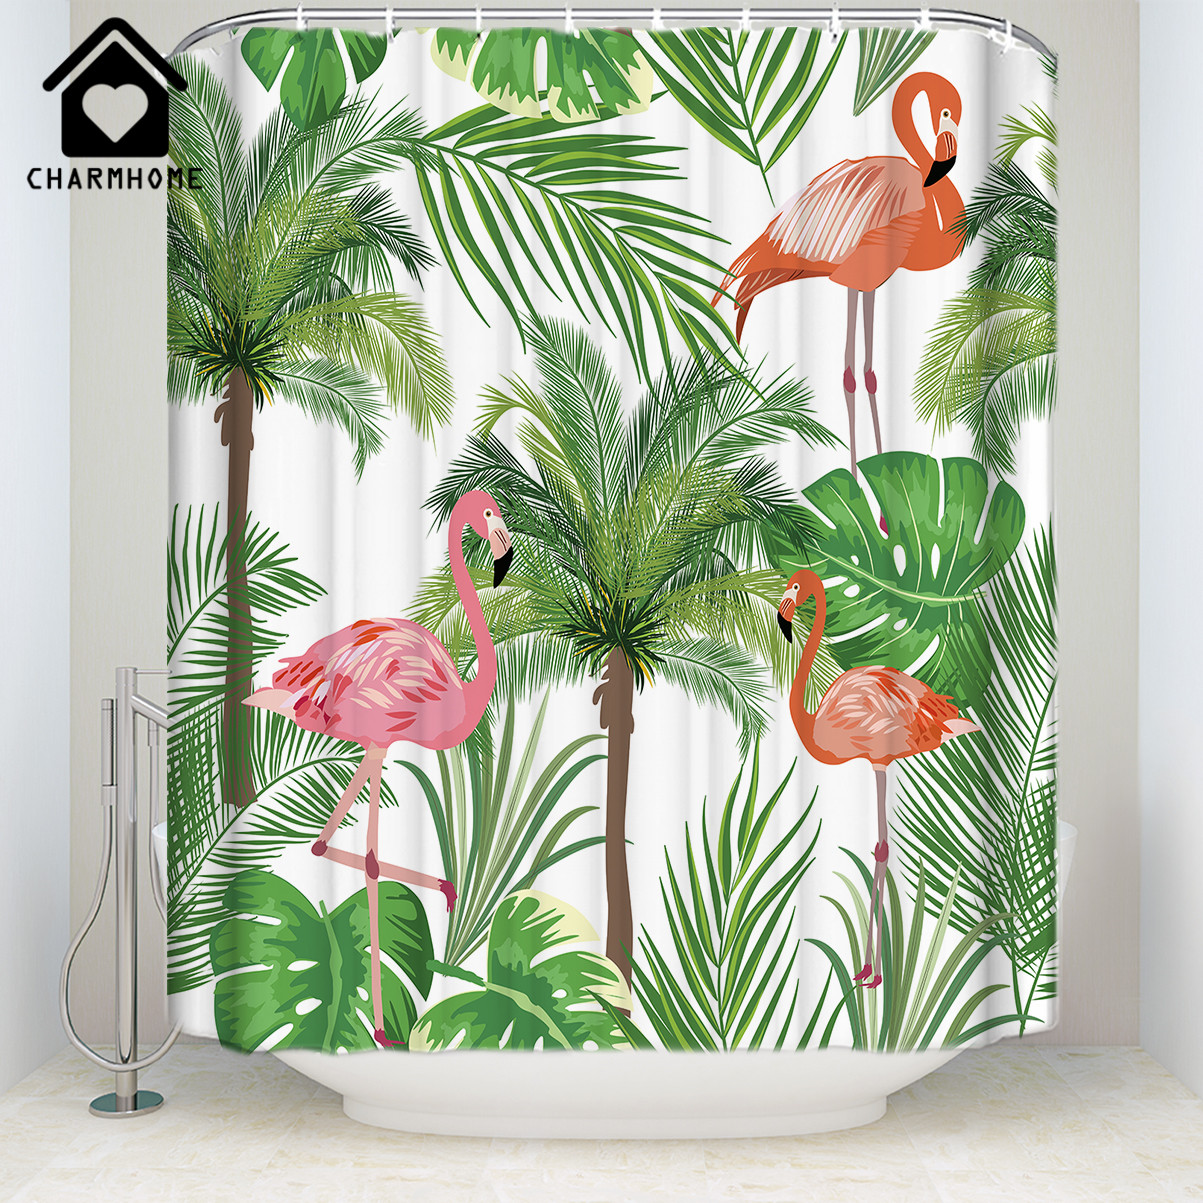 Pink Flamingo Bathroom Decor.Us 15 66 25 Off Charmhome 2018 New Flamingos Bathroom Decor Shower Curtain Pink Flamingo With Tropical Palm Tree Garden Plant Shower Curtain In